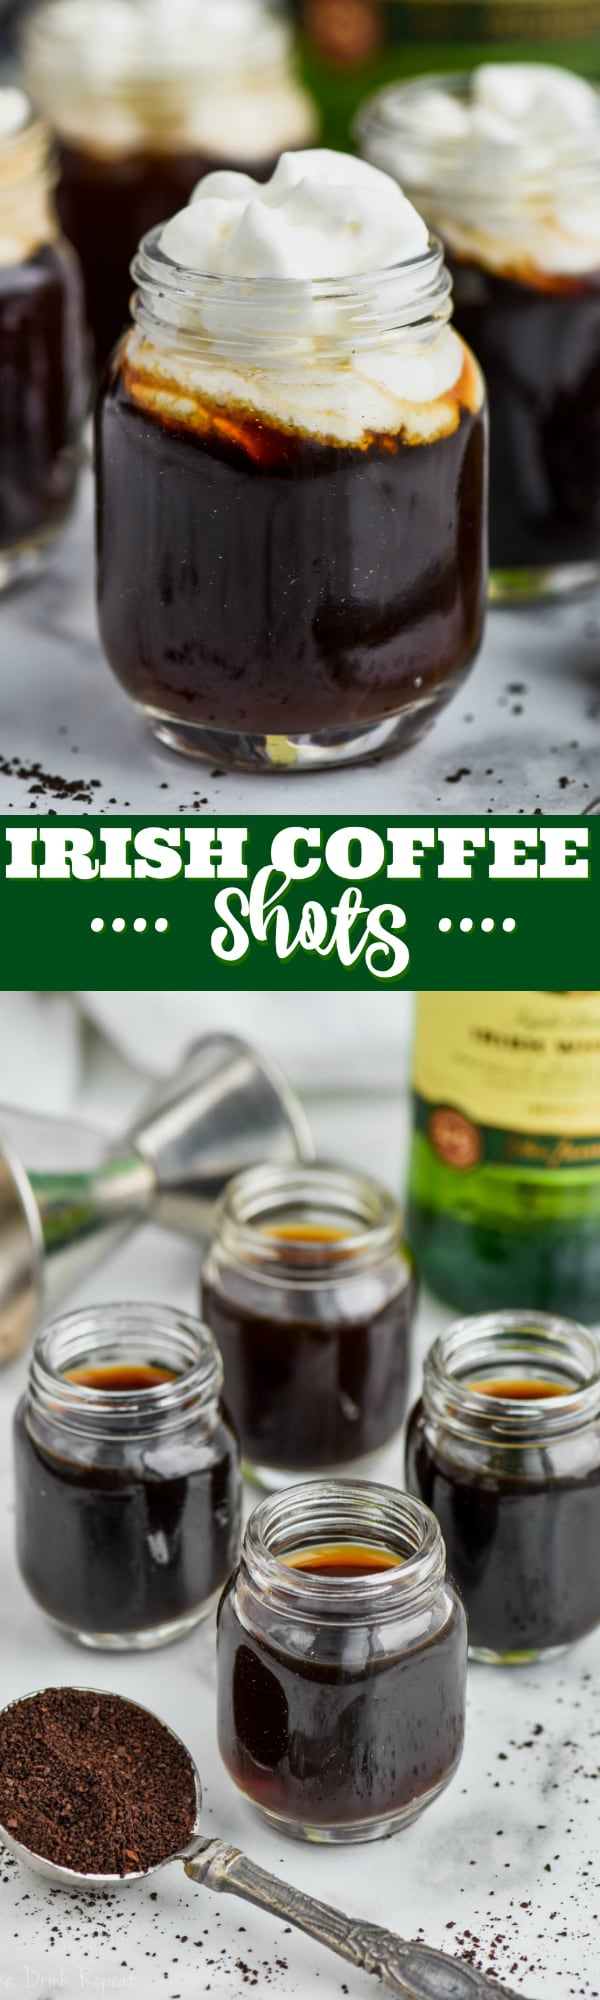 shot glass filled with irish coffee and topped with whipped cream